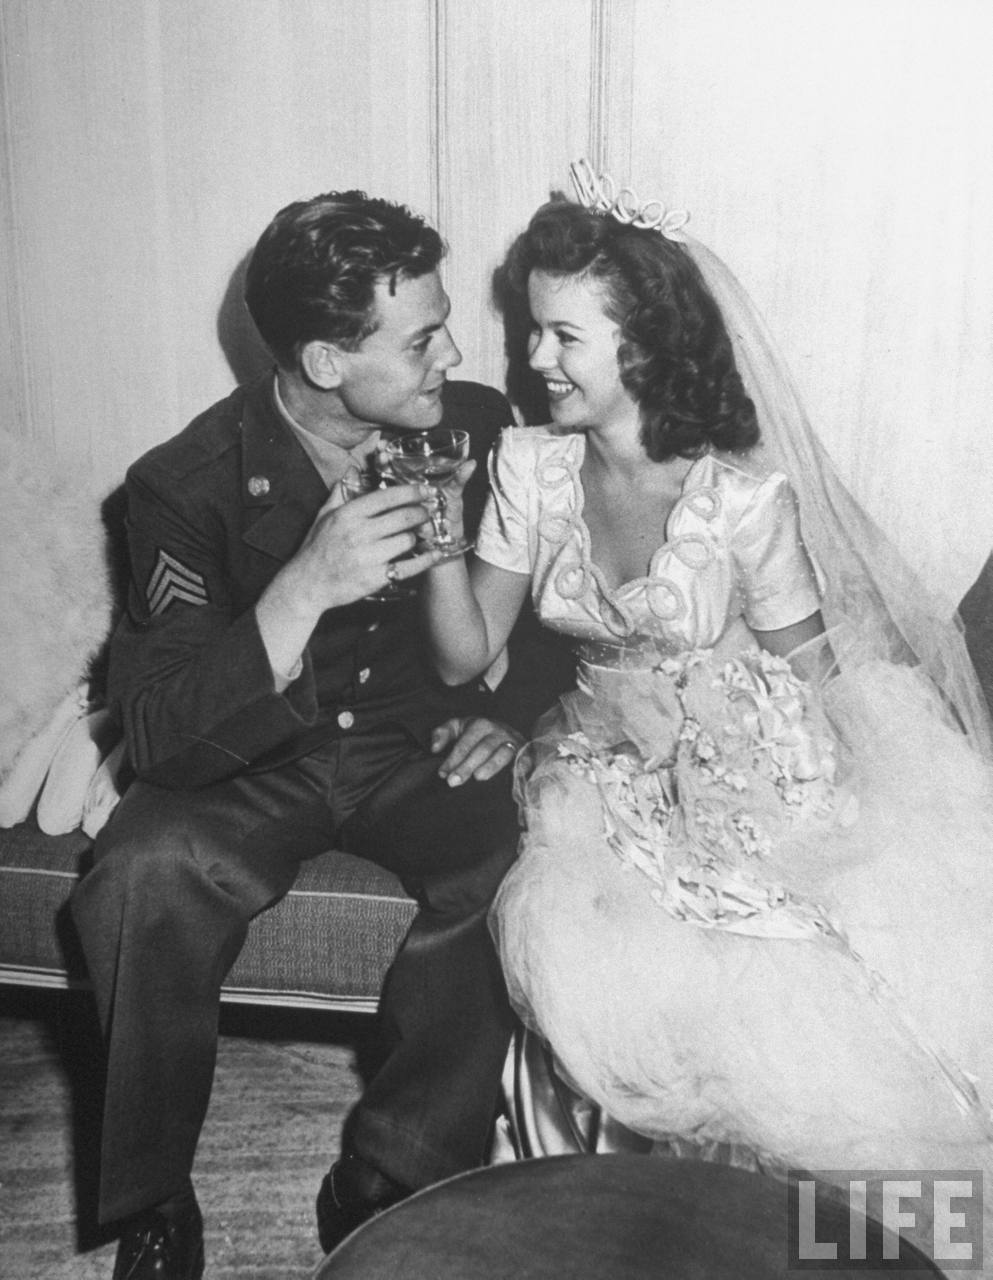 17 Year Old Shirley Temple Enjoying A Drink With Her Husband 1945